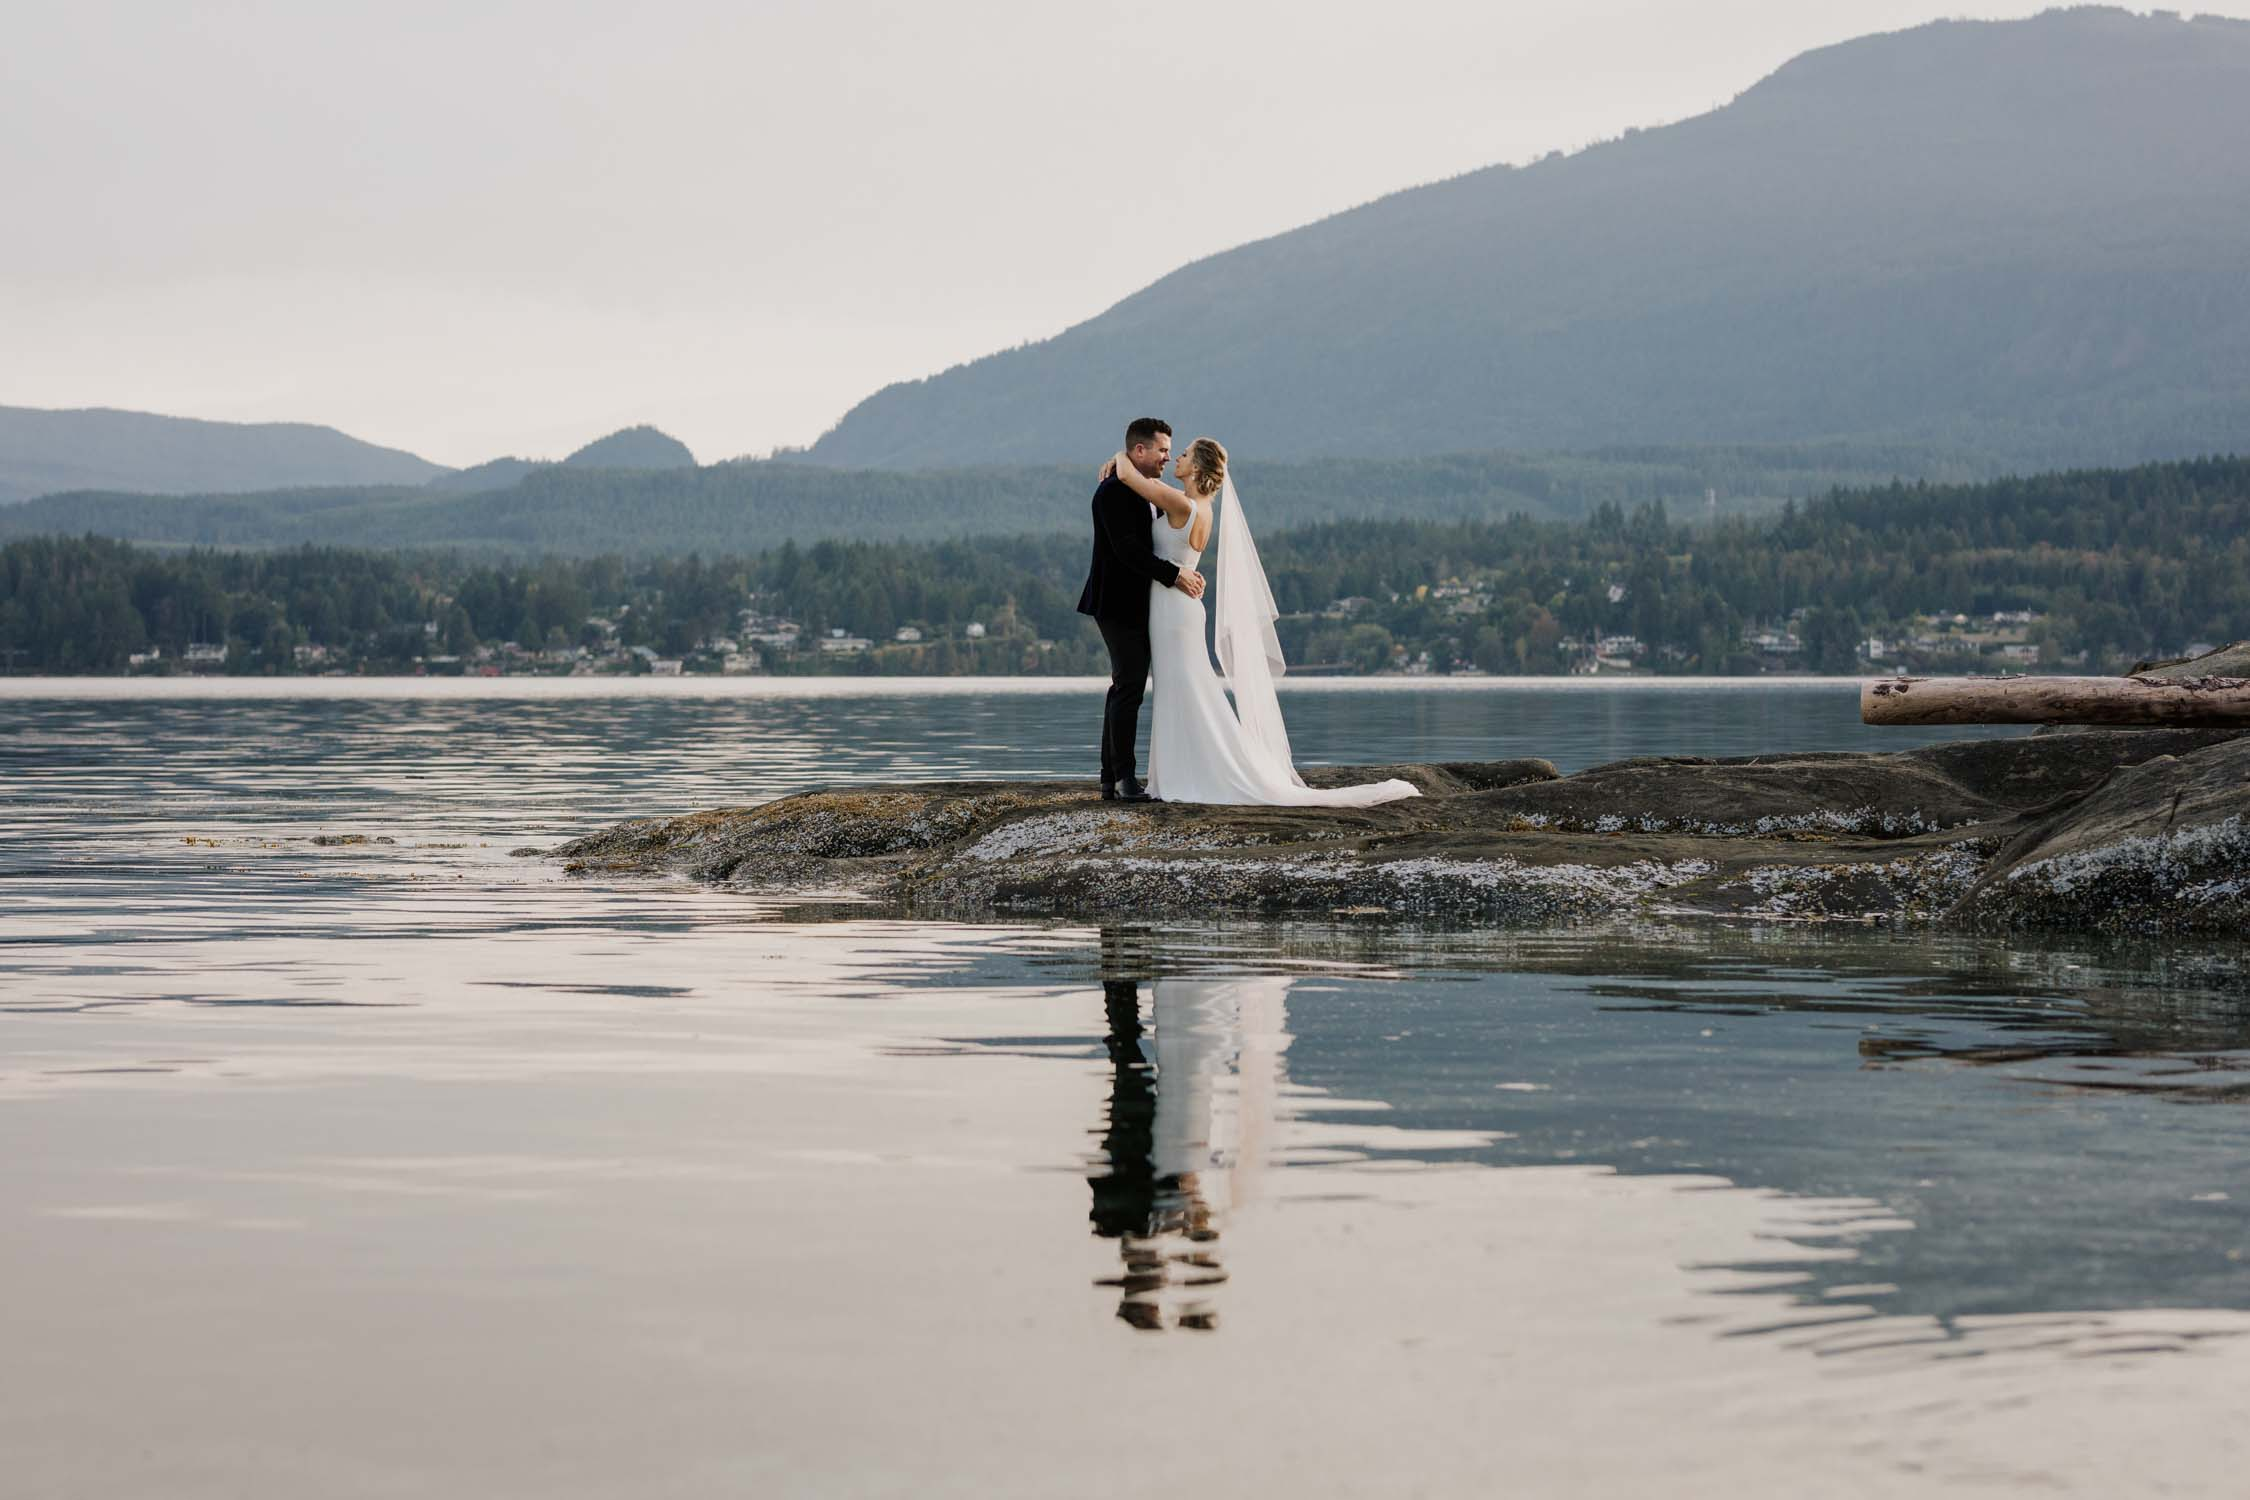 Vancouver Island Wedding Photographer captures intimate beach wedding on Vancouver Island at beautiful venue and location with sea and mountain views